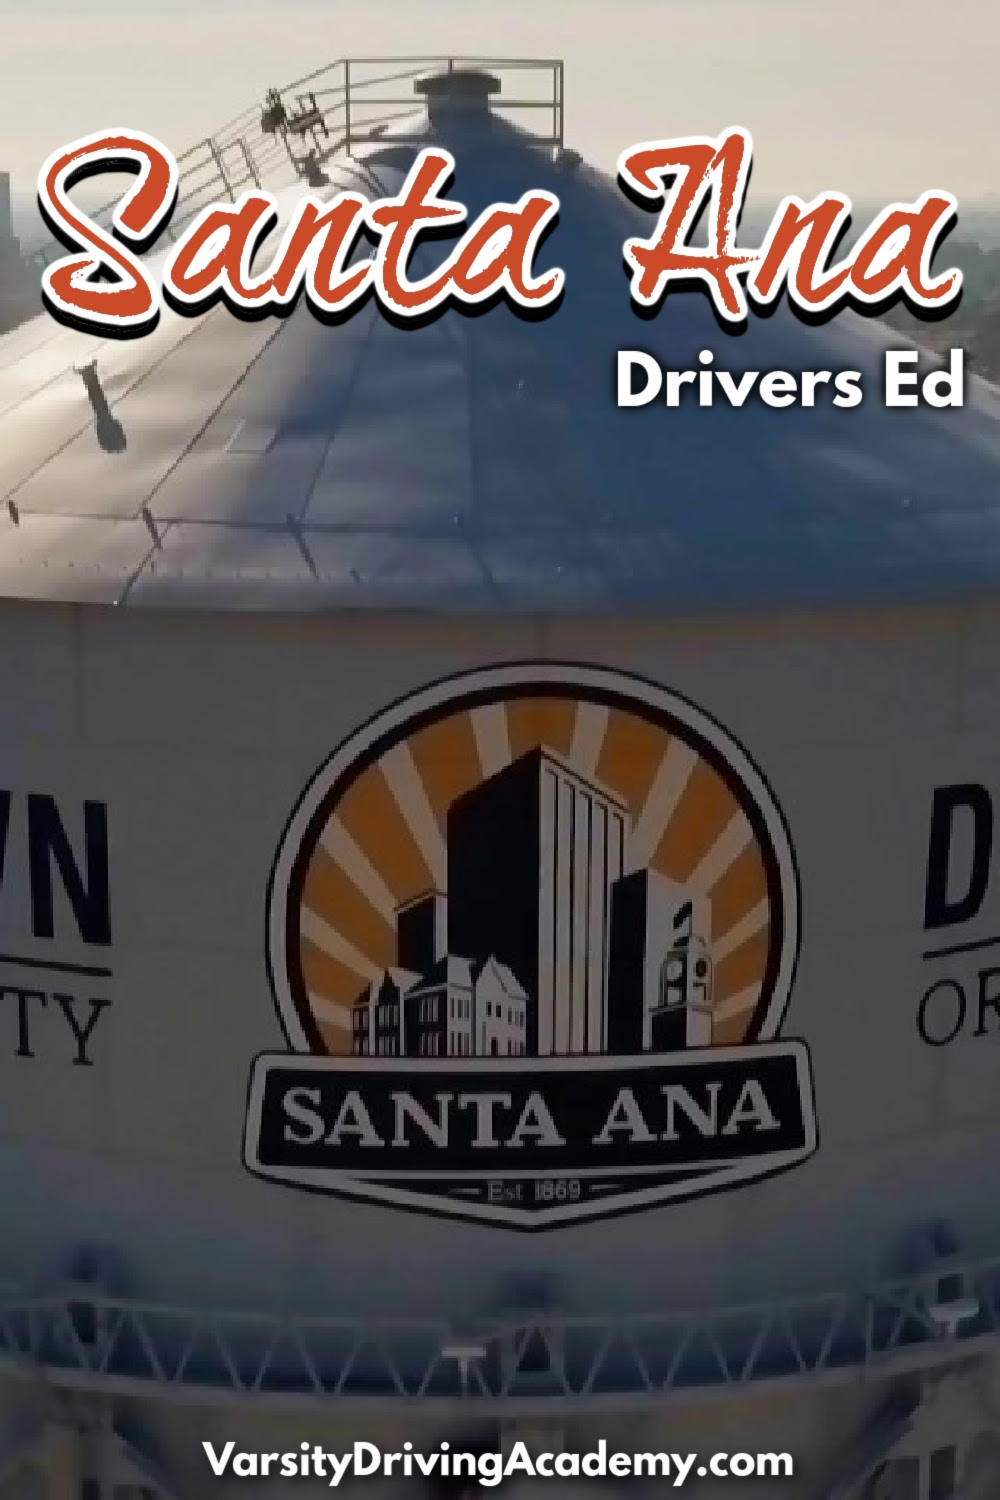 Varsity Driving School offers both teens and adults the best Santa Ana drivers ed which covers defensive driving and more.